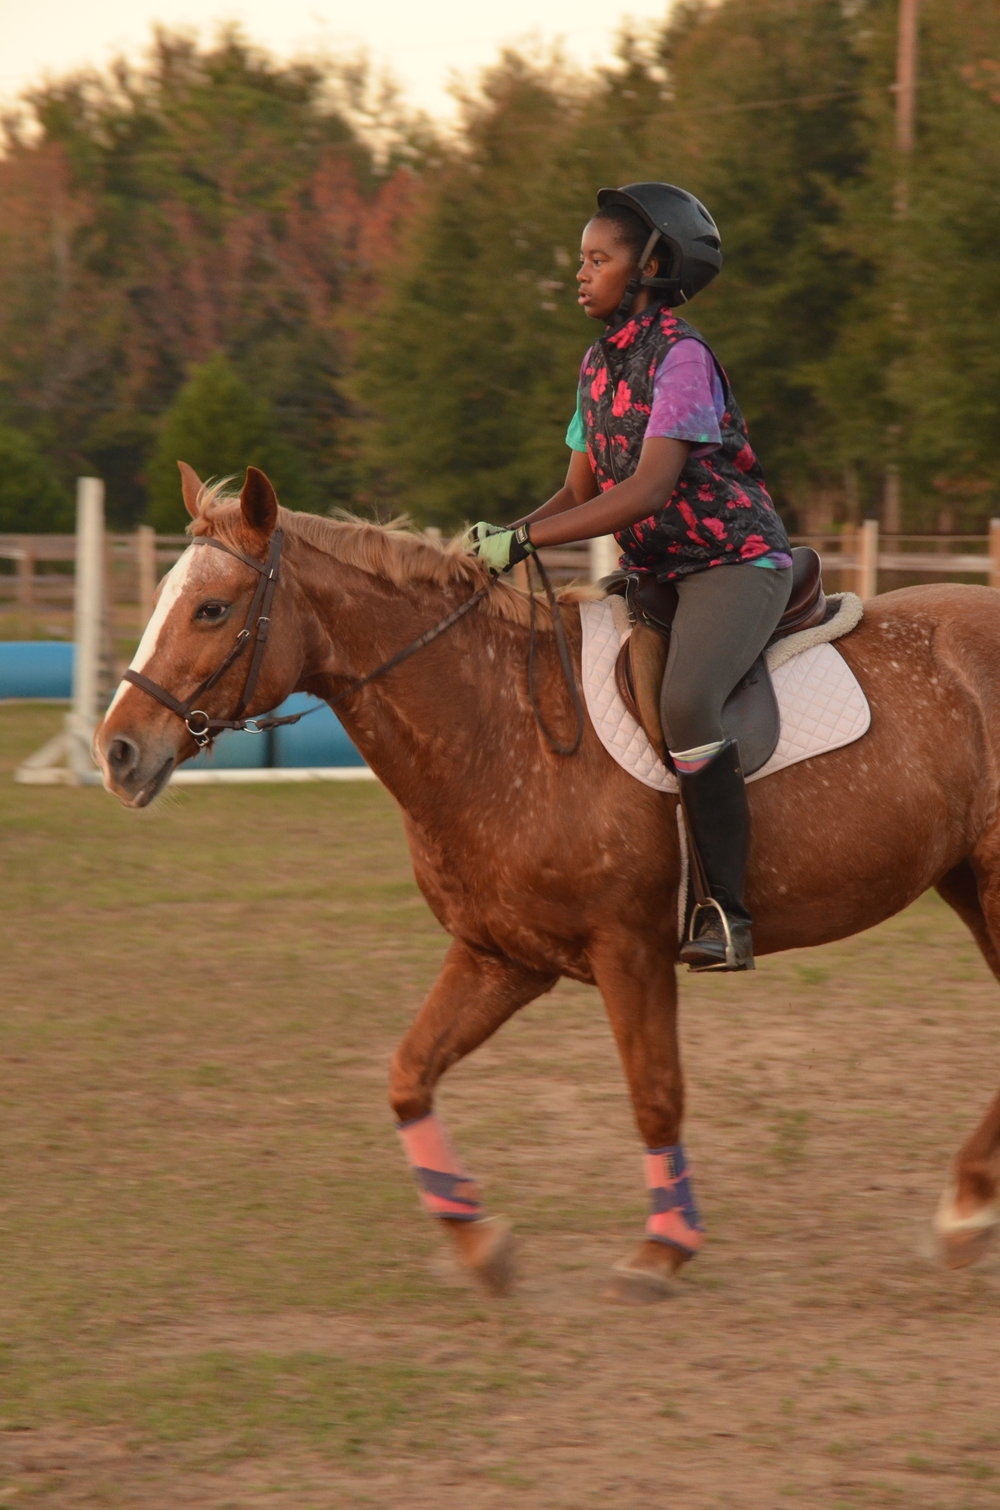 Sunriser Stables - Riding Lessons in Pensacola FL - English Horse Riding Barn and Stable (4).JPG